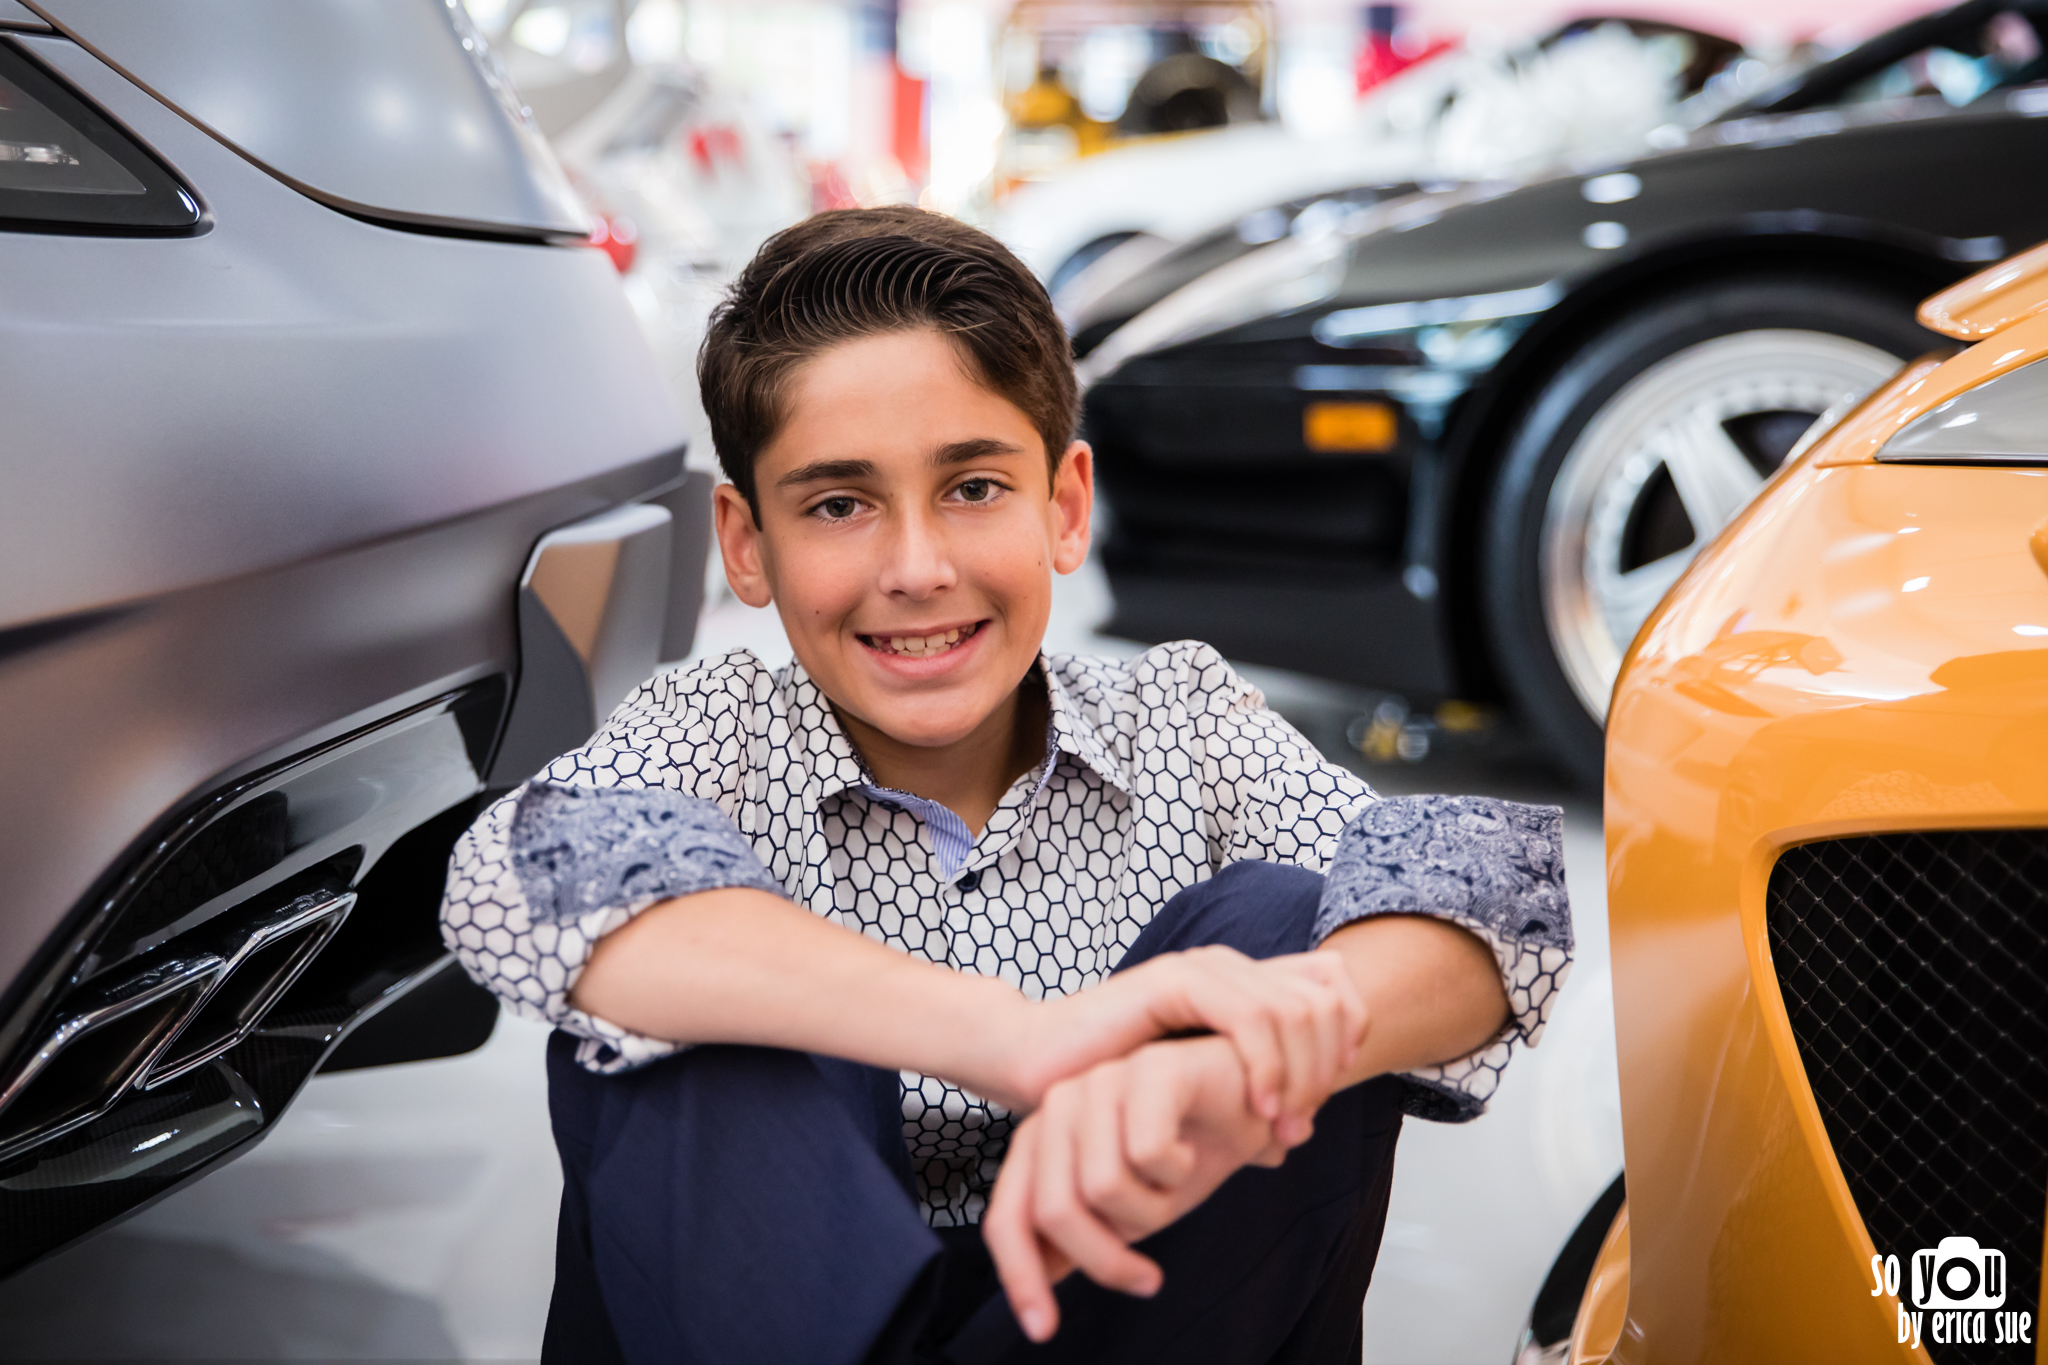 so-you-by-erica-sue-mitzvah-photographer-collection-luxury-car-ft-lauderdale-5059.jpg